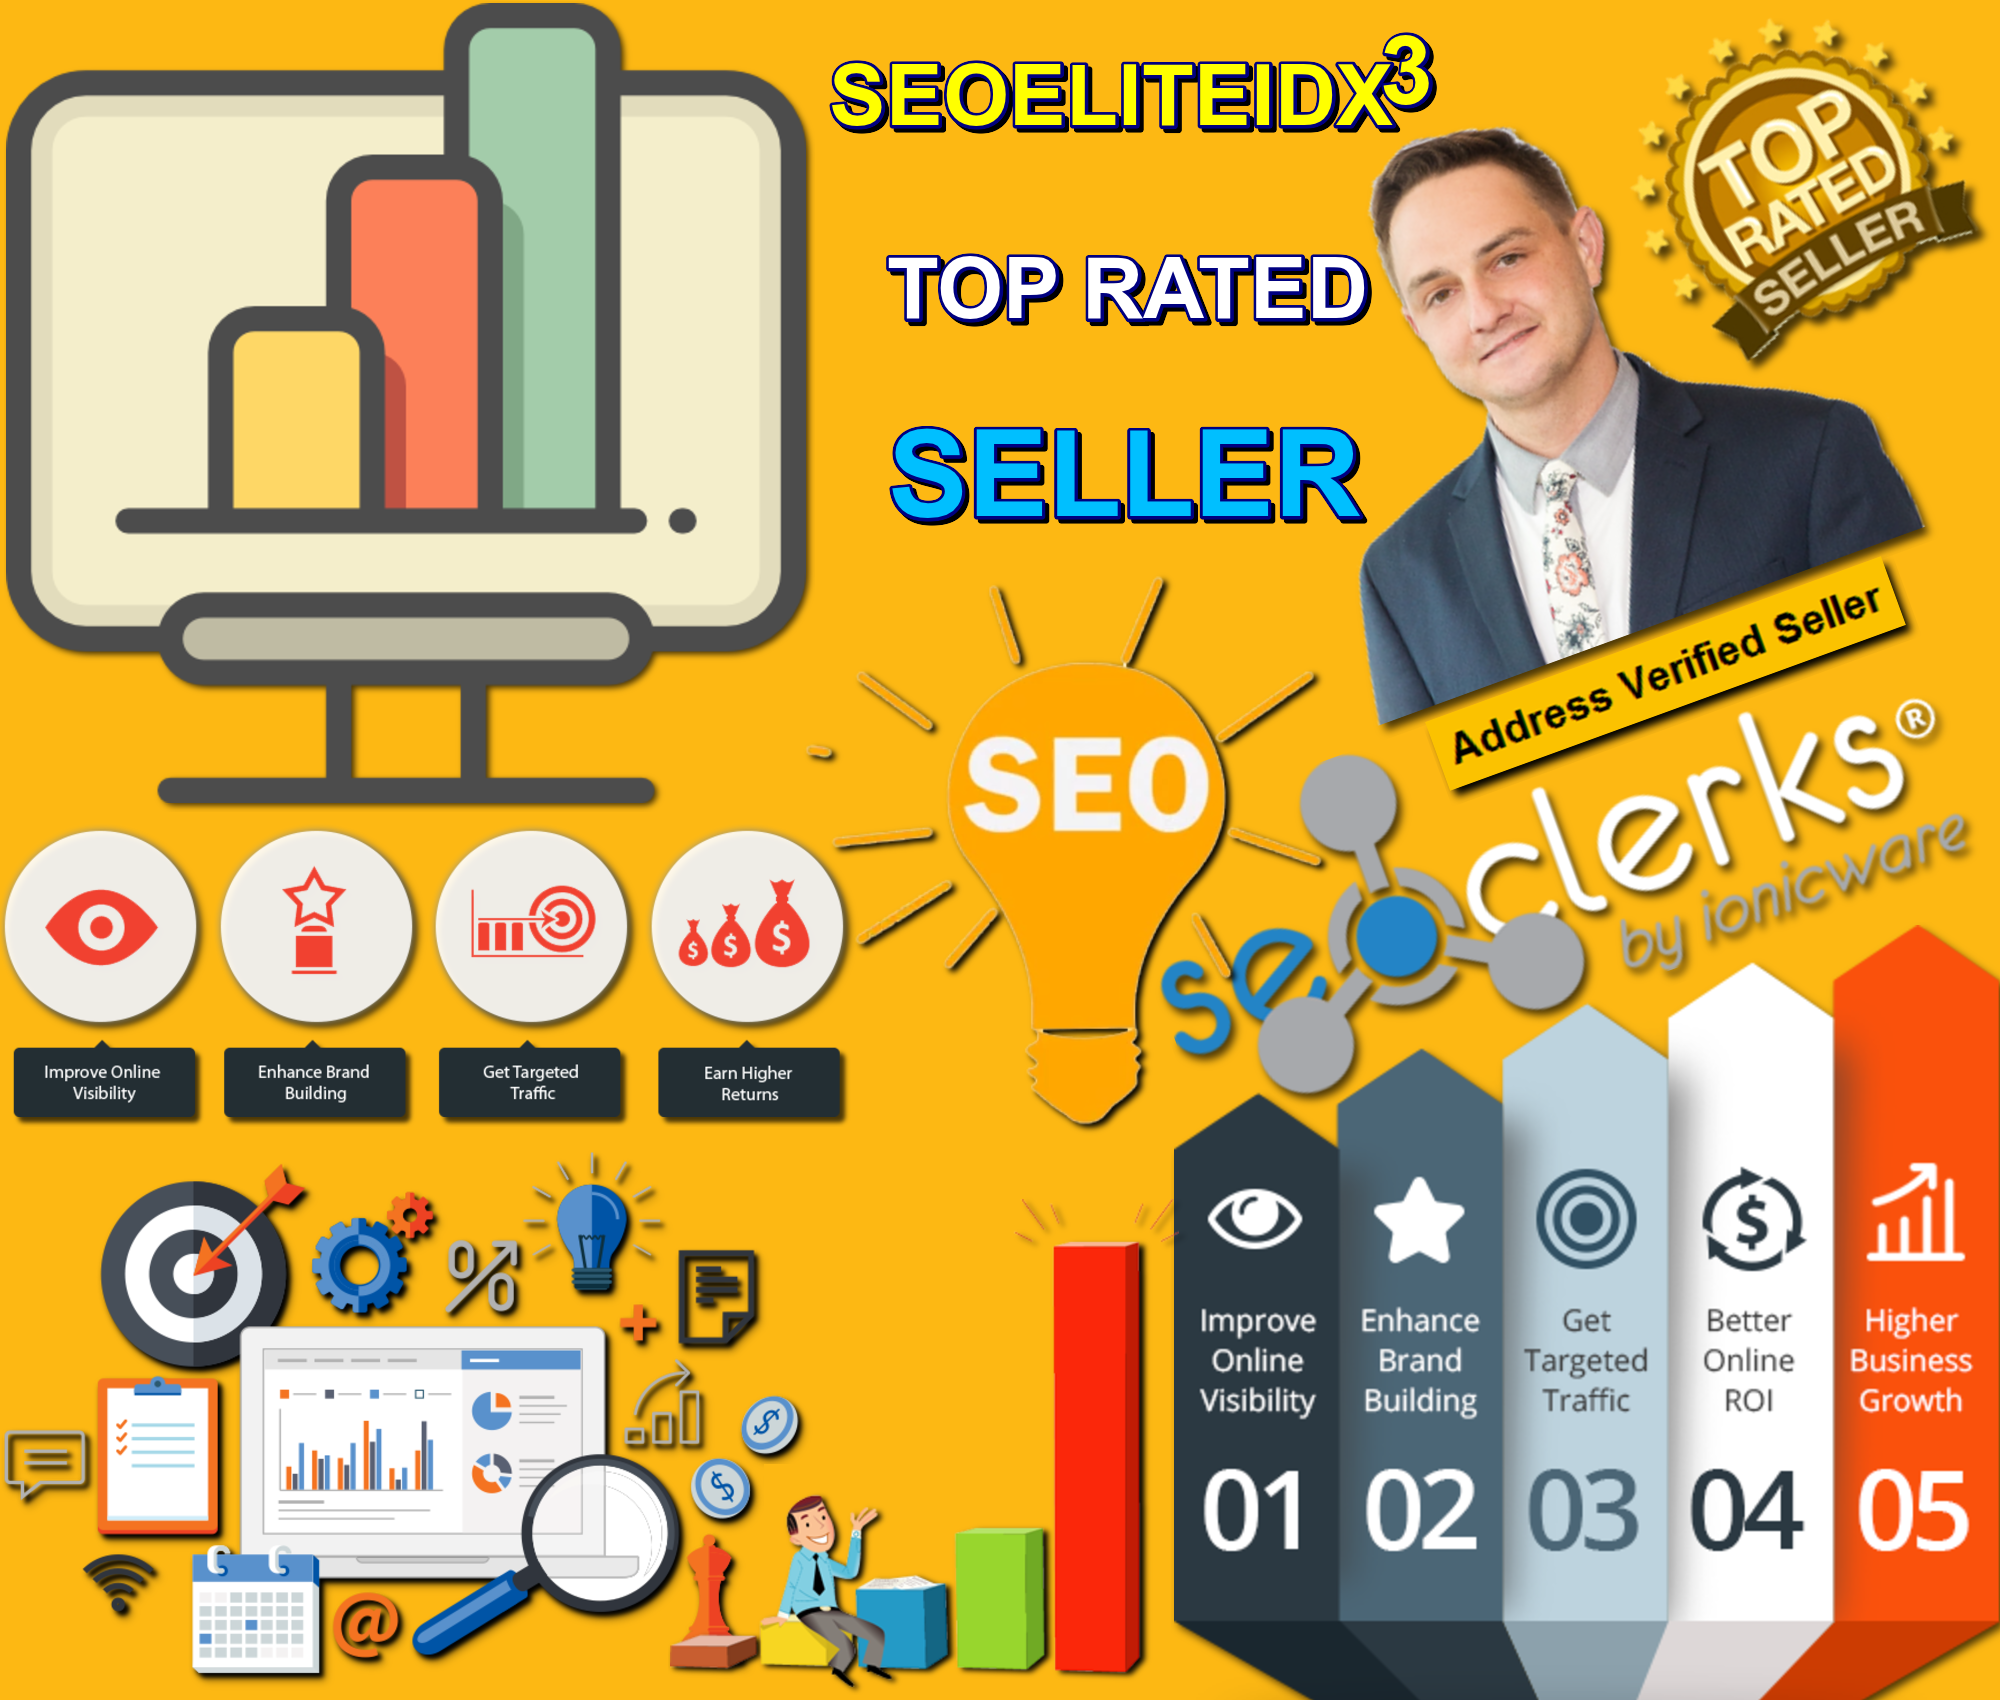 Get 8 Million Visitors Worldwide With USA Website Social Media SEO Traffic Boost Help To Ranking 1st Page On Google Guaranteed